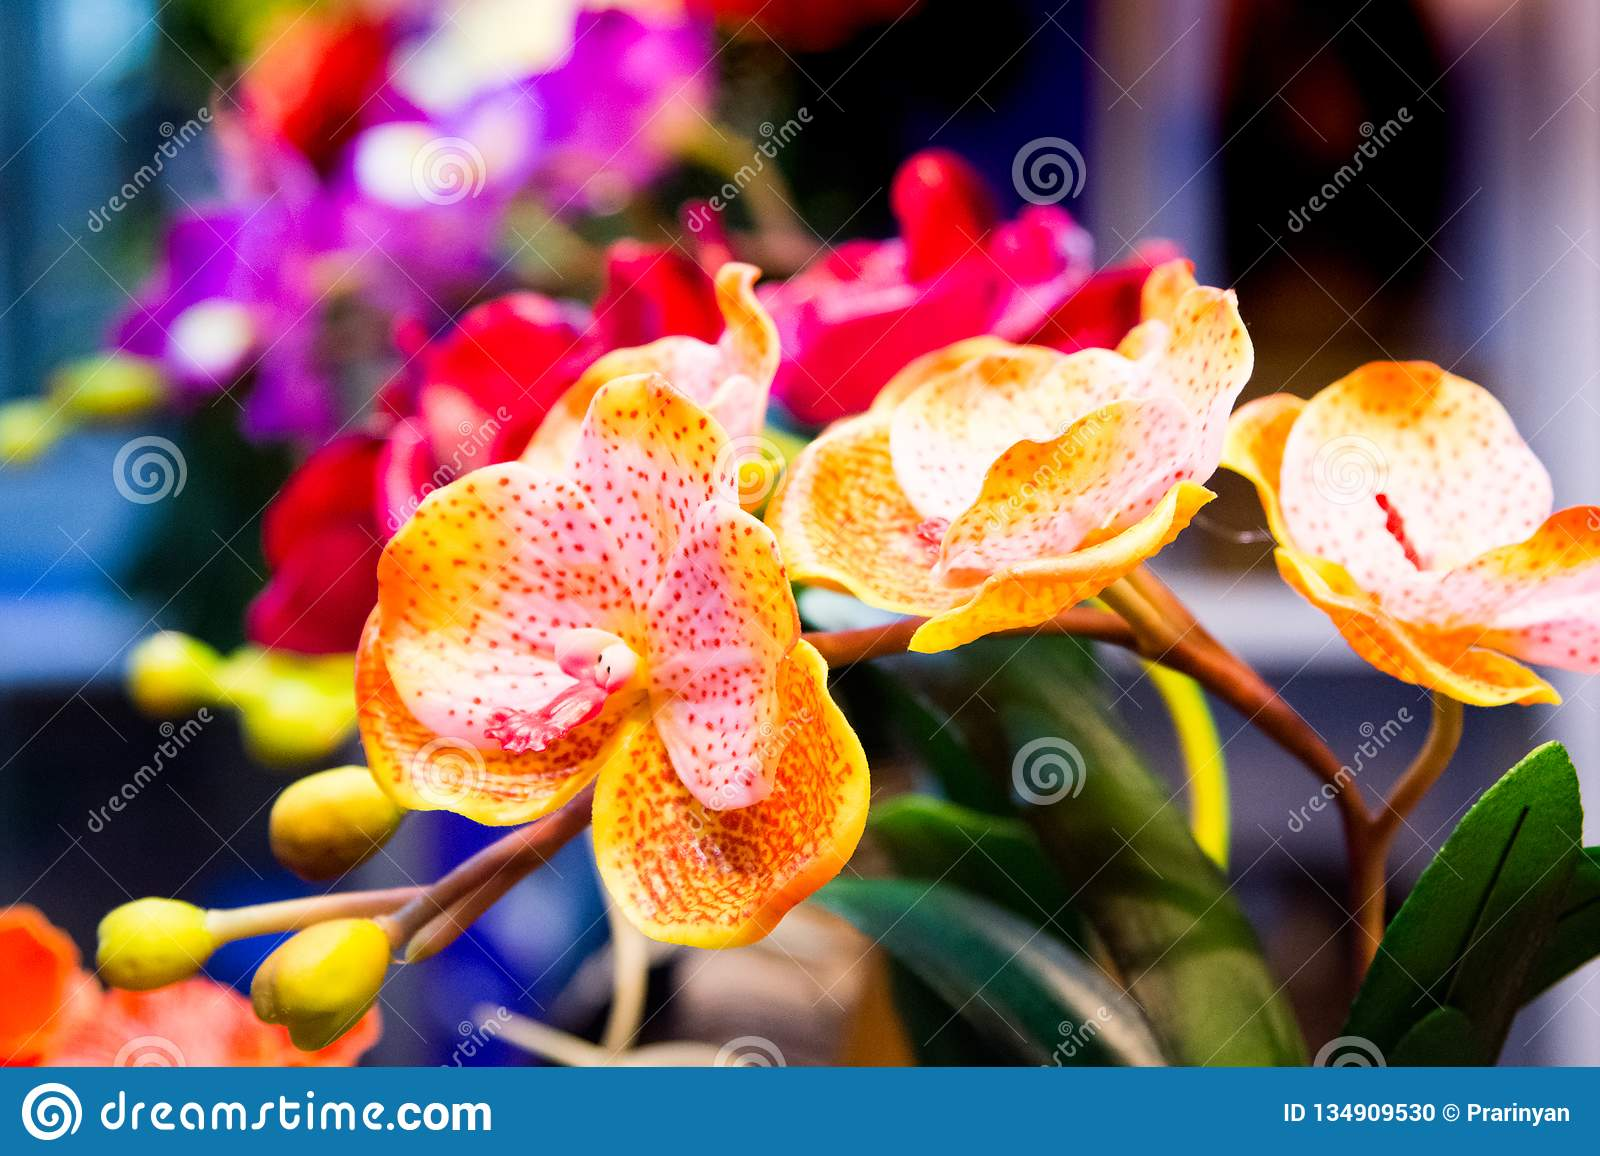 Orchid flower, colorful orchid